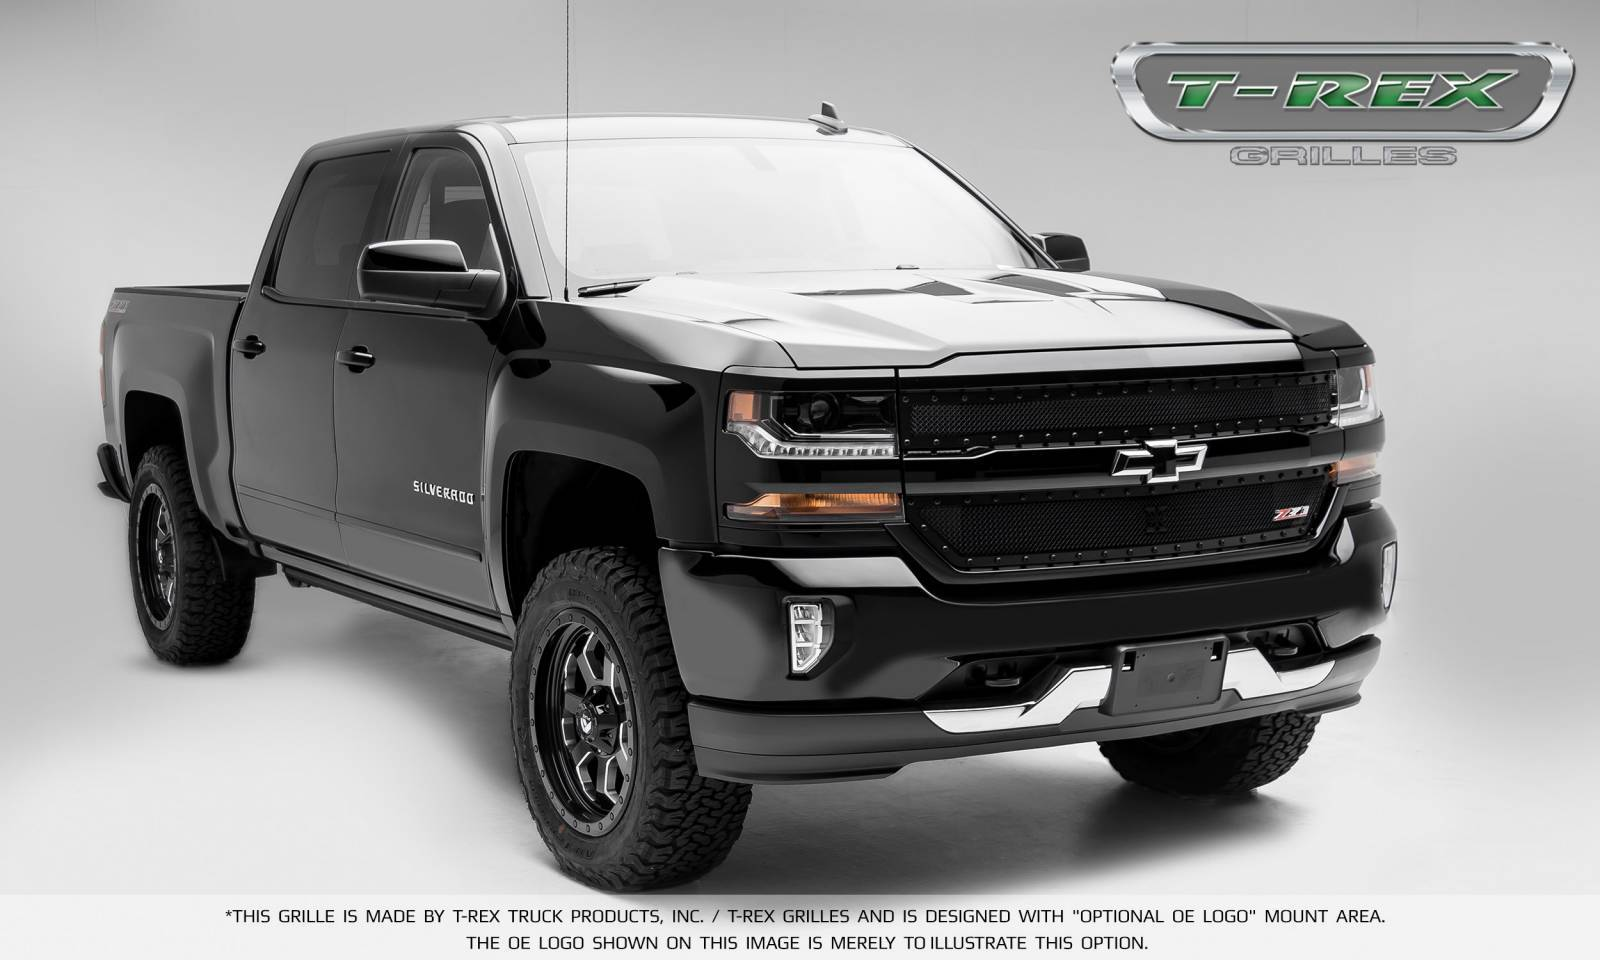 chevrolet silverado 1500 x metal series powder coated black 2 pc main grille overlay fits. Black Bedroom Furniture Sets. Home Design Ideas